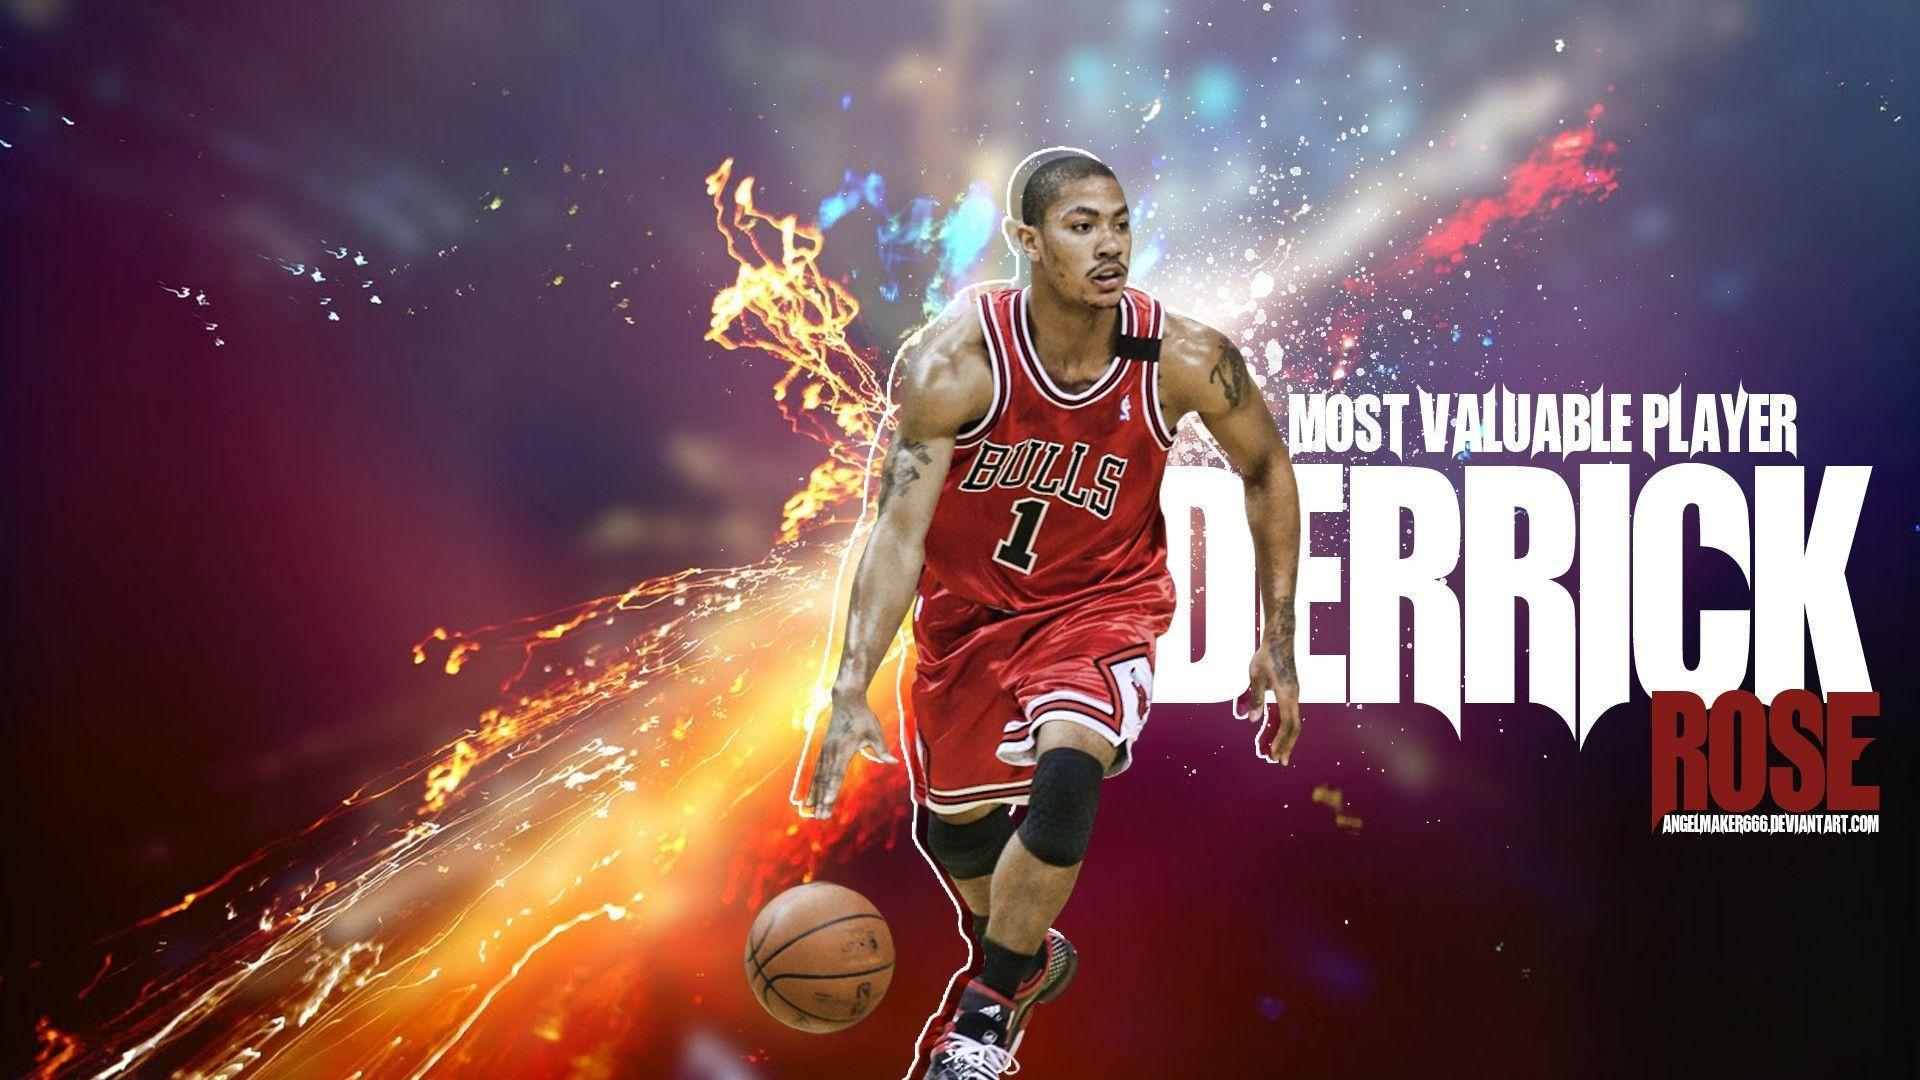 derrick rose wallpaper iphone - photo #20